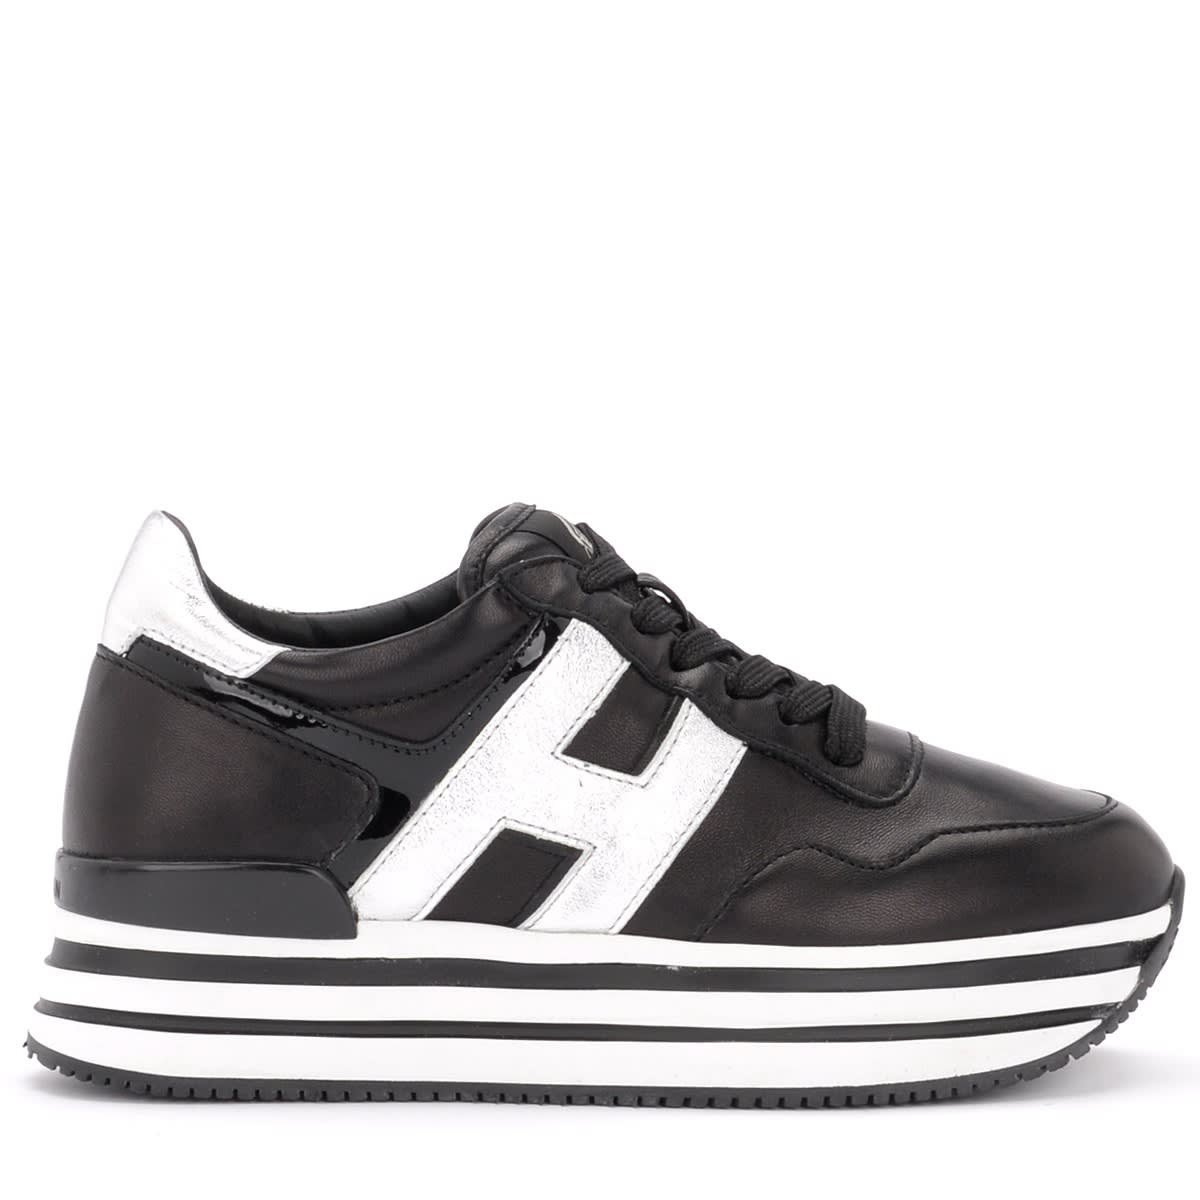 Hogan H438 Black Leather Sneaker With Silver Laminated Leather Details